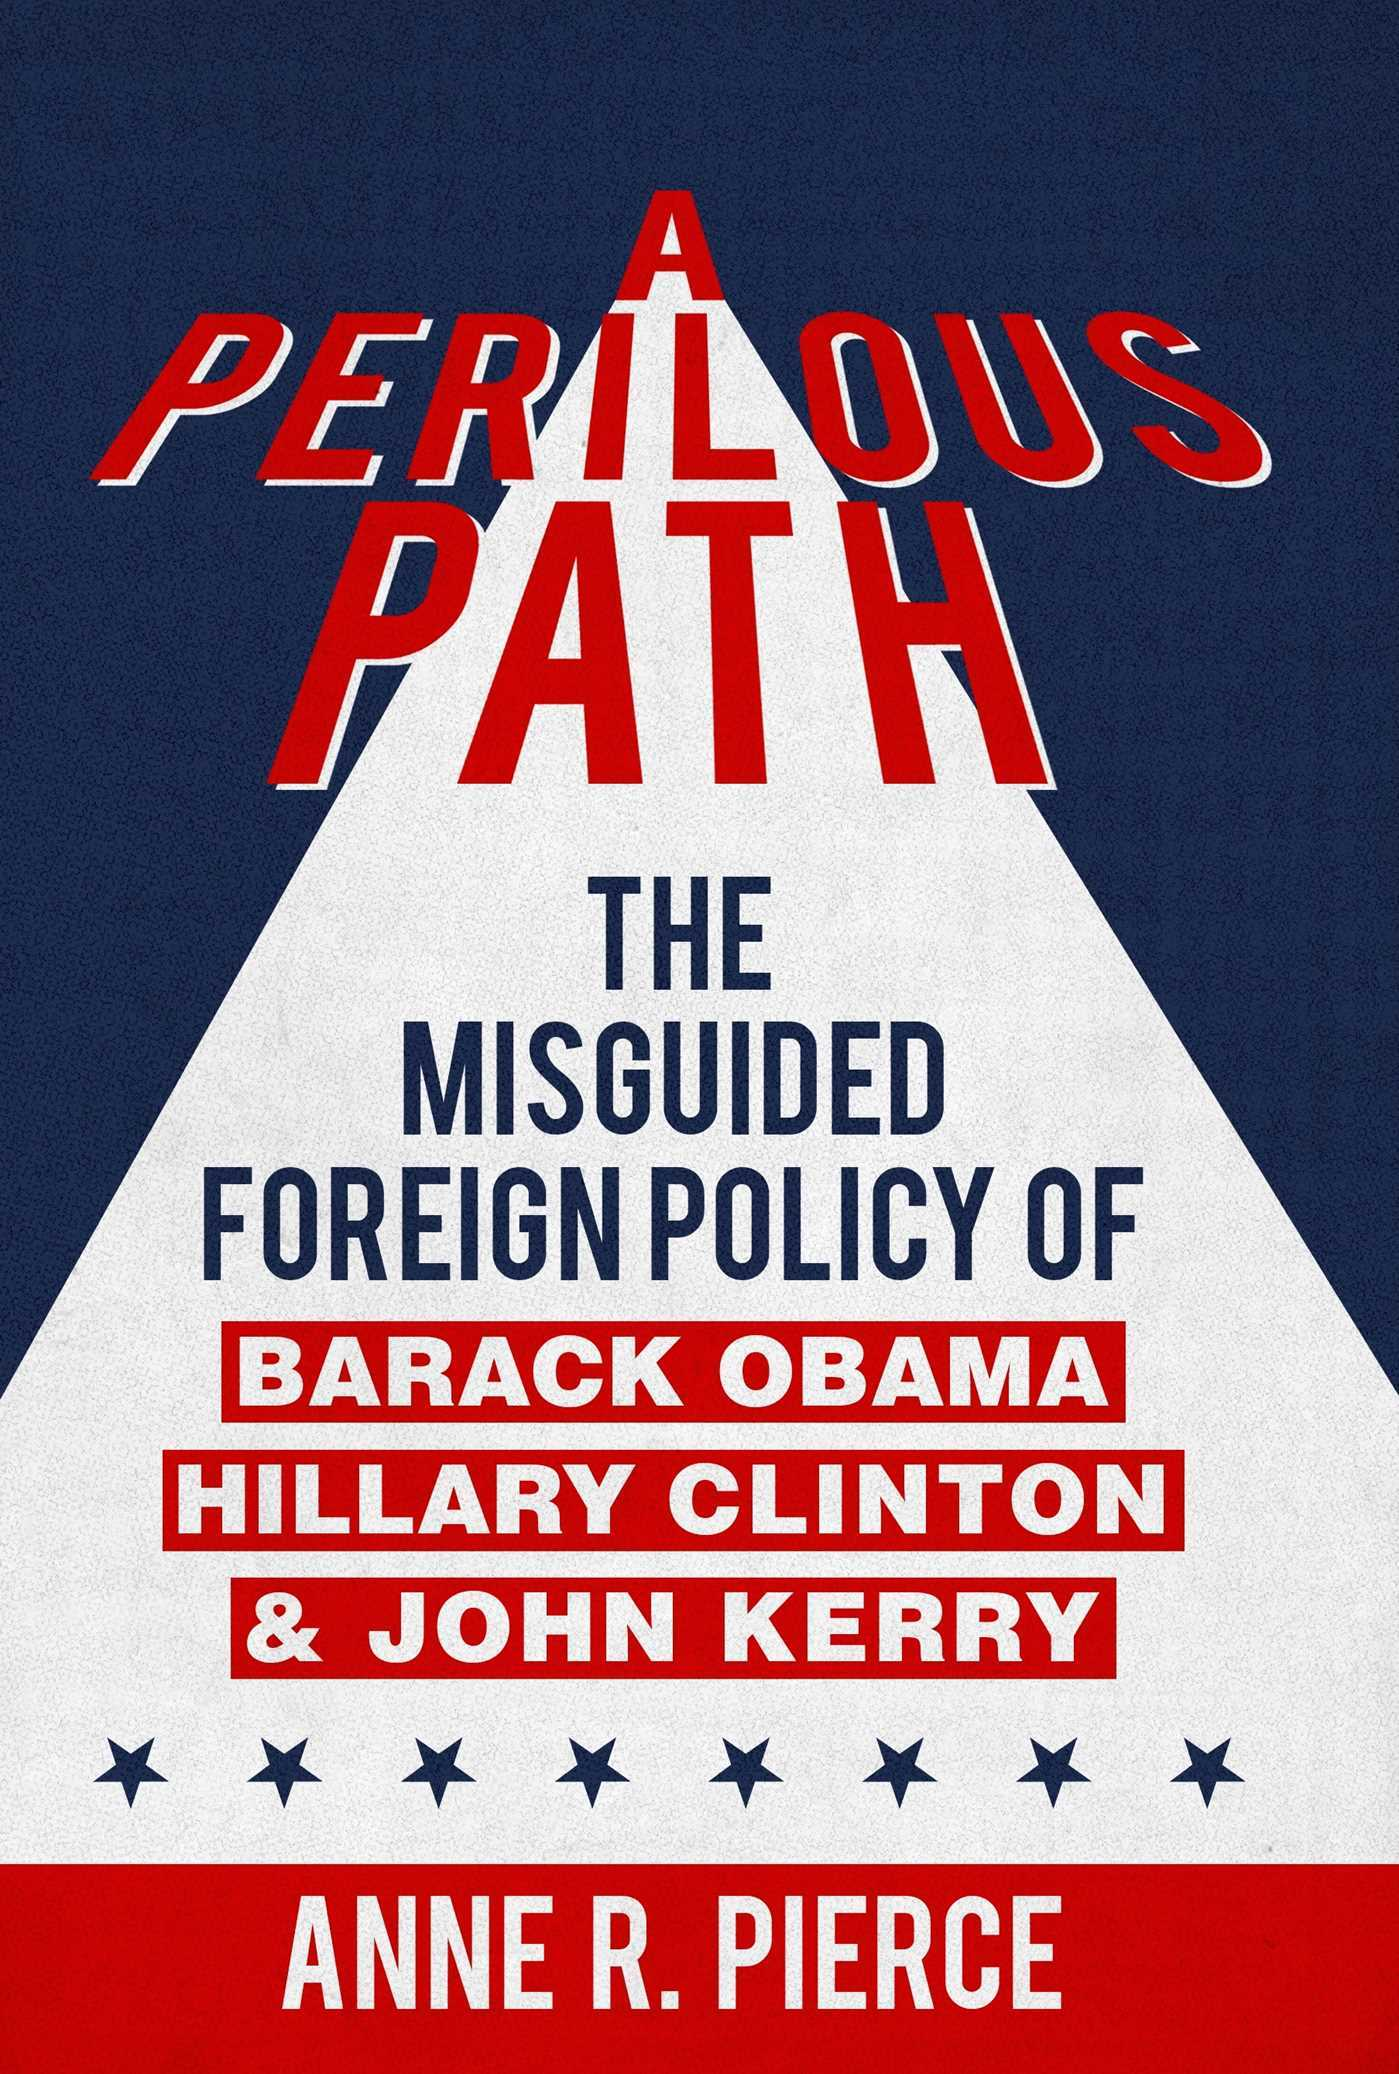 A Perilous Path: The Misguided Foreign Policy of Barack Obama, Hillary Clinton and John Kerry  by  Anne  R.  Pierce